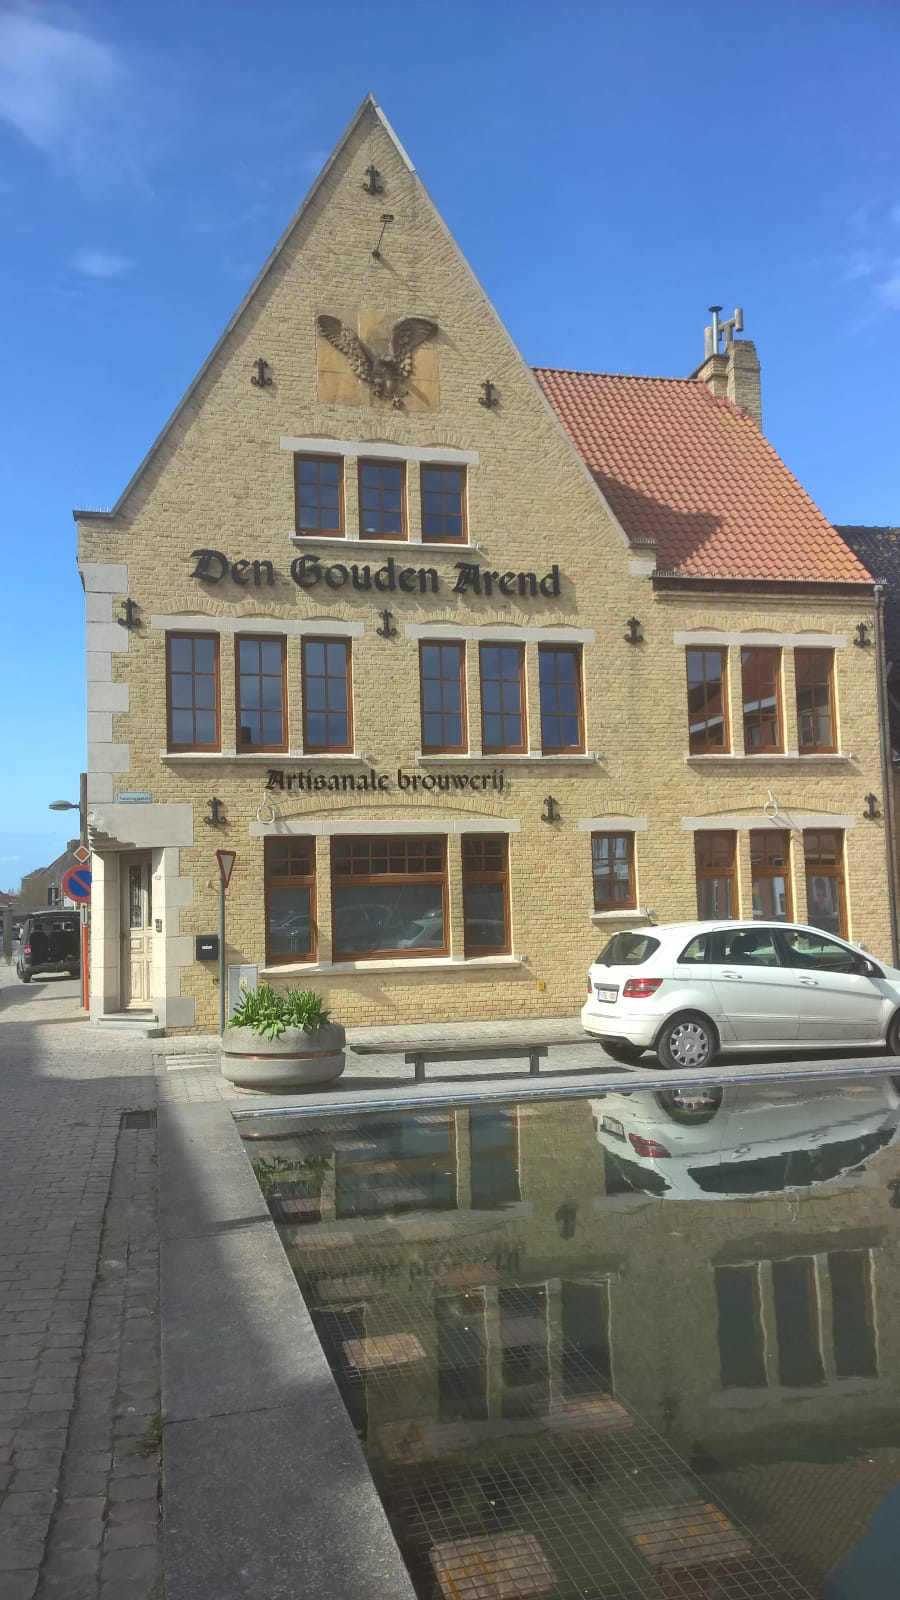 https://brouwerij-werbrouck.be/wp-content/uploads/2018/04/Gevel.jpg